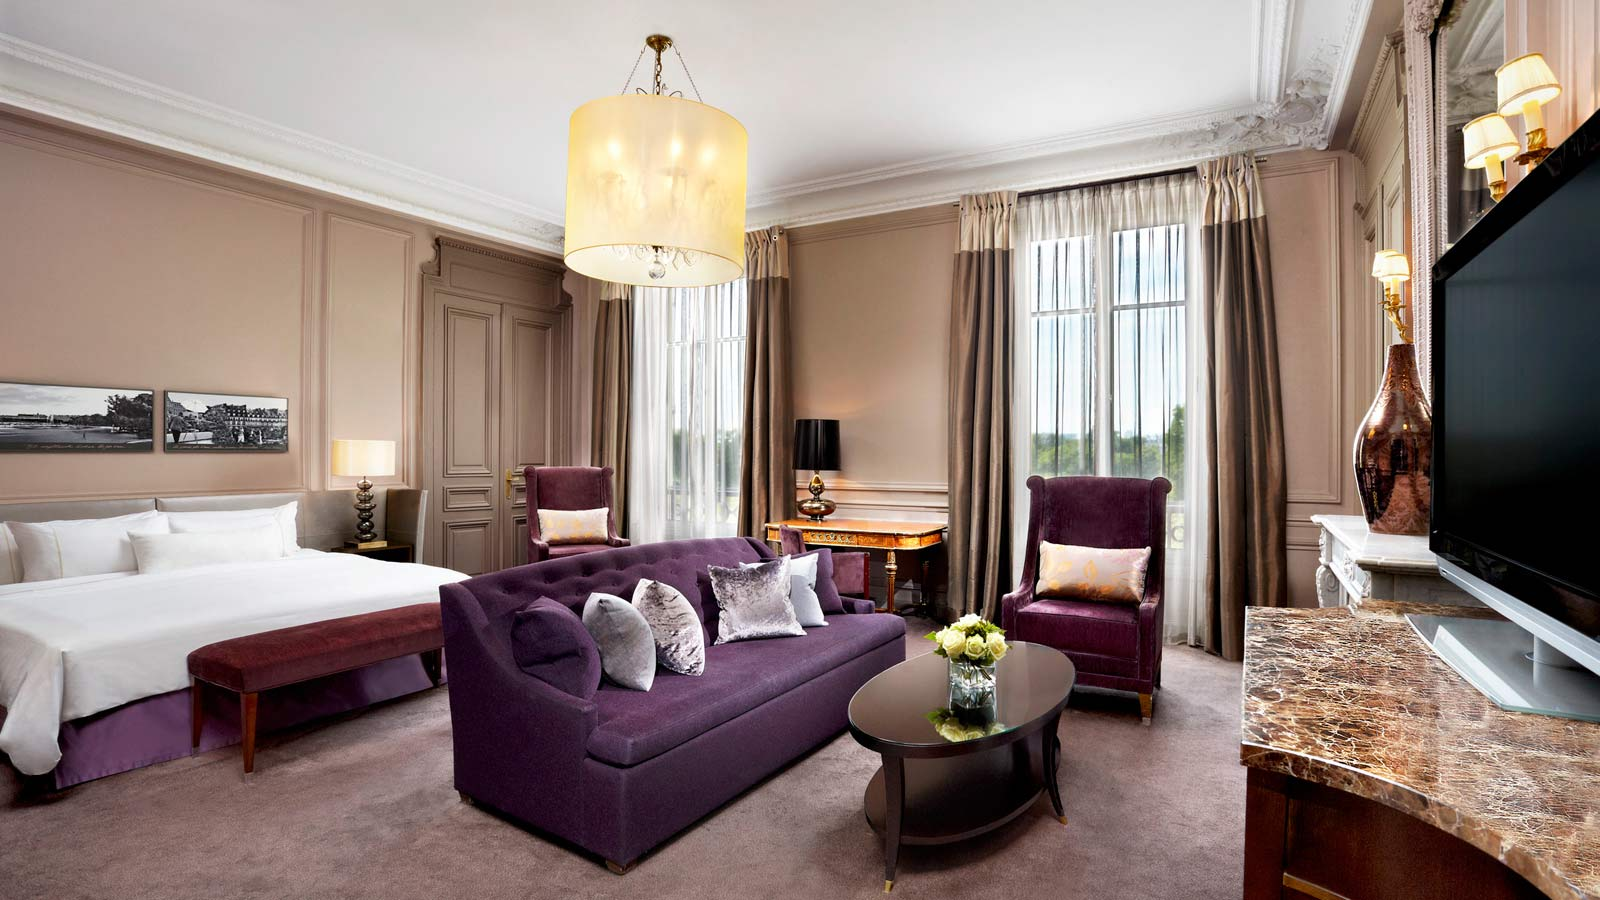 Junior Suite with Eiffel Tower View in The Westin Paris - Vendôme